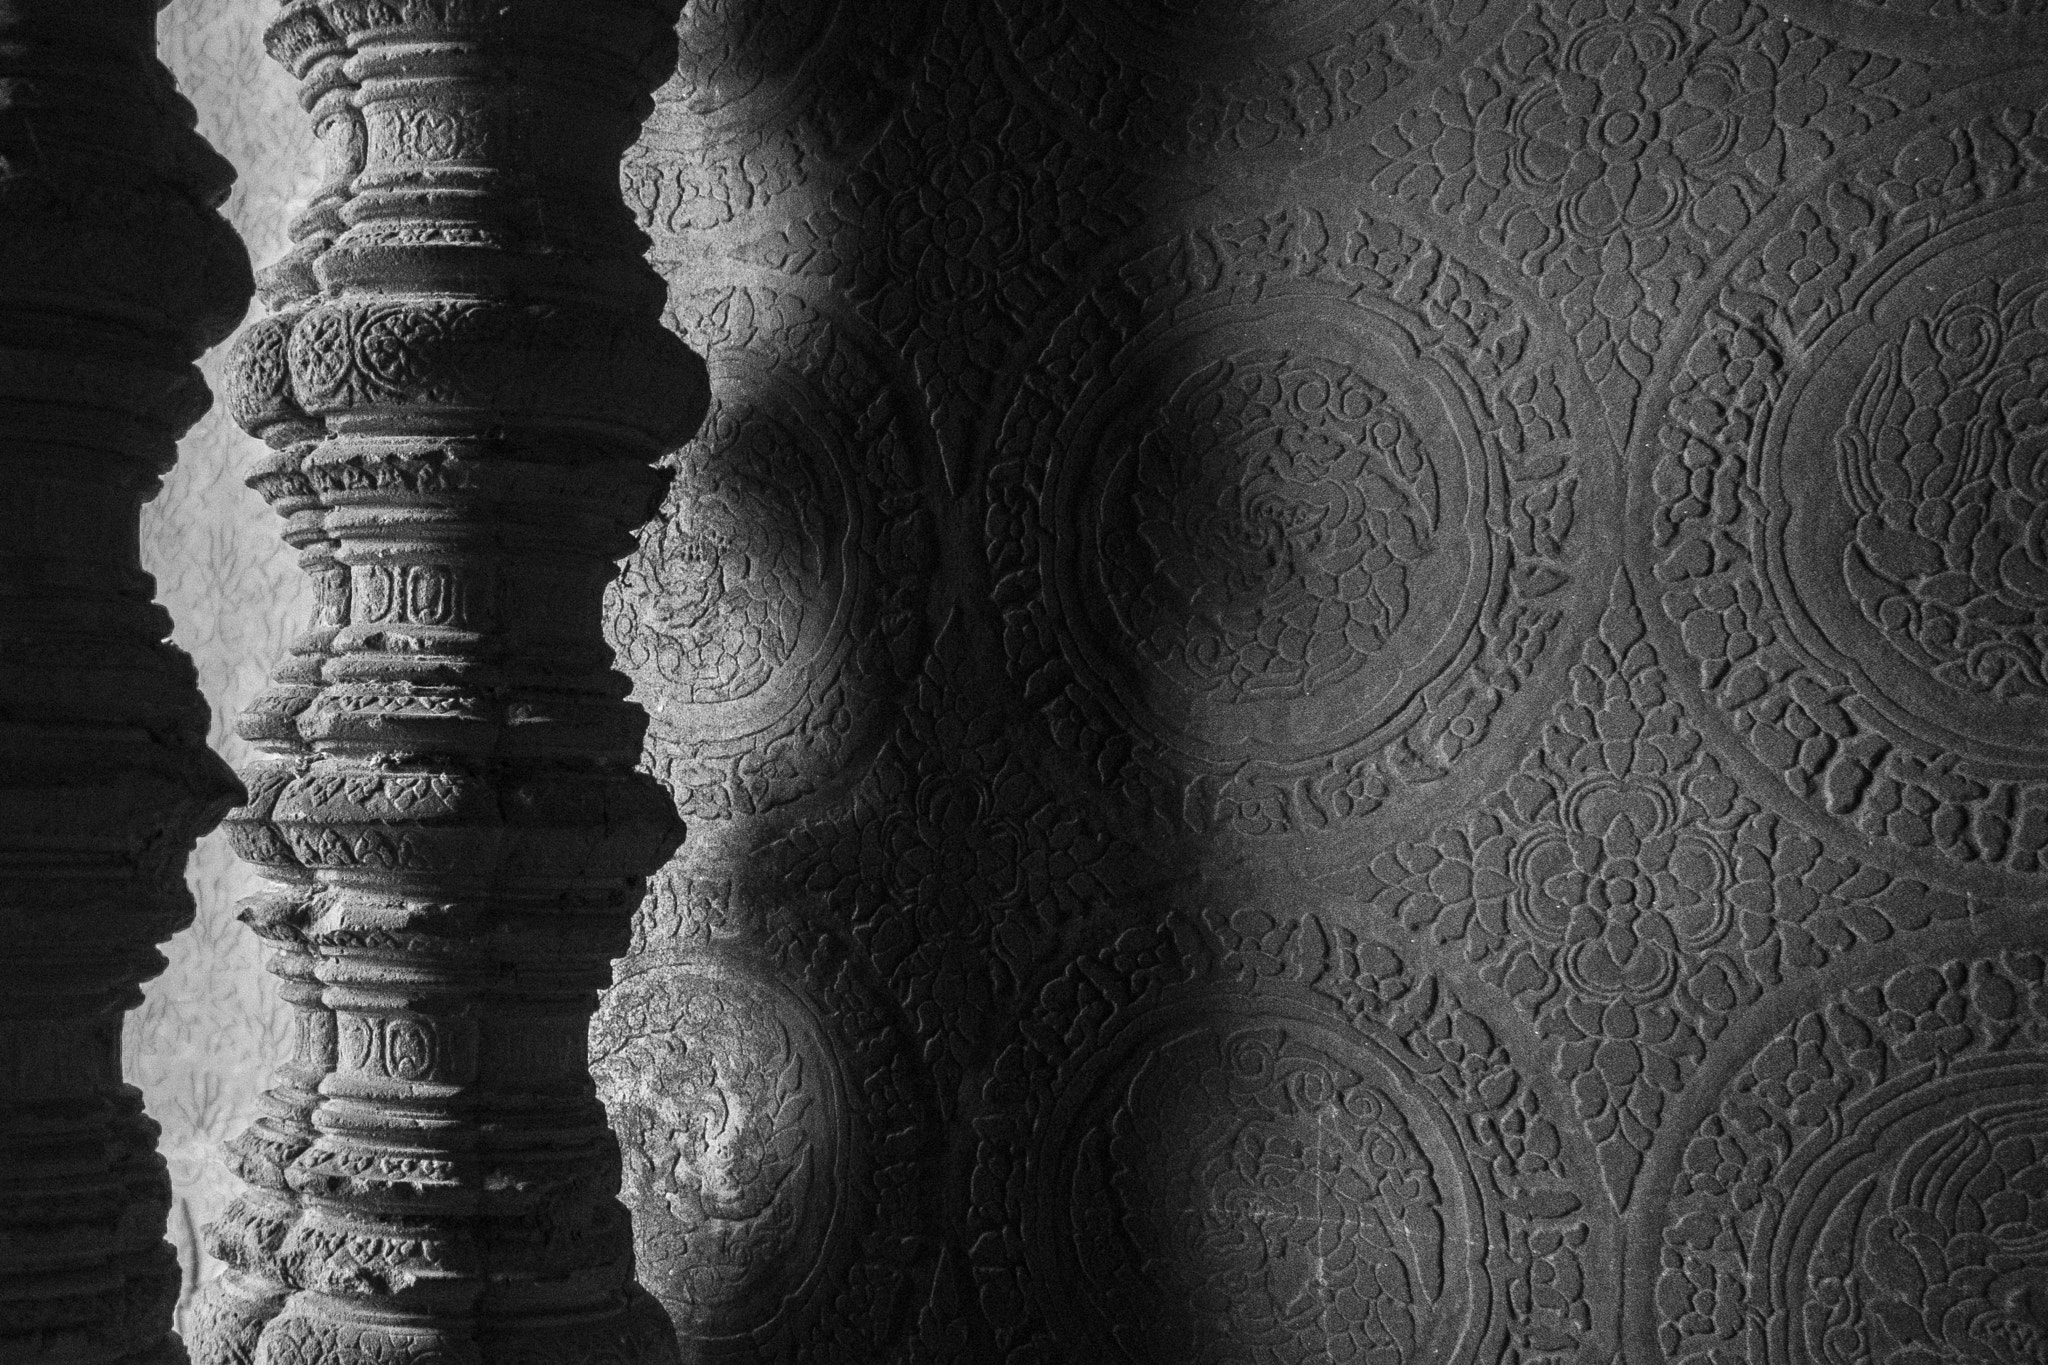 Photograph Shadows on the temple's walls by Joseph Louis Tan on 500px